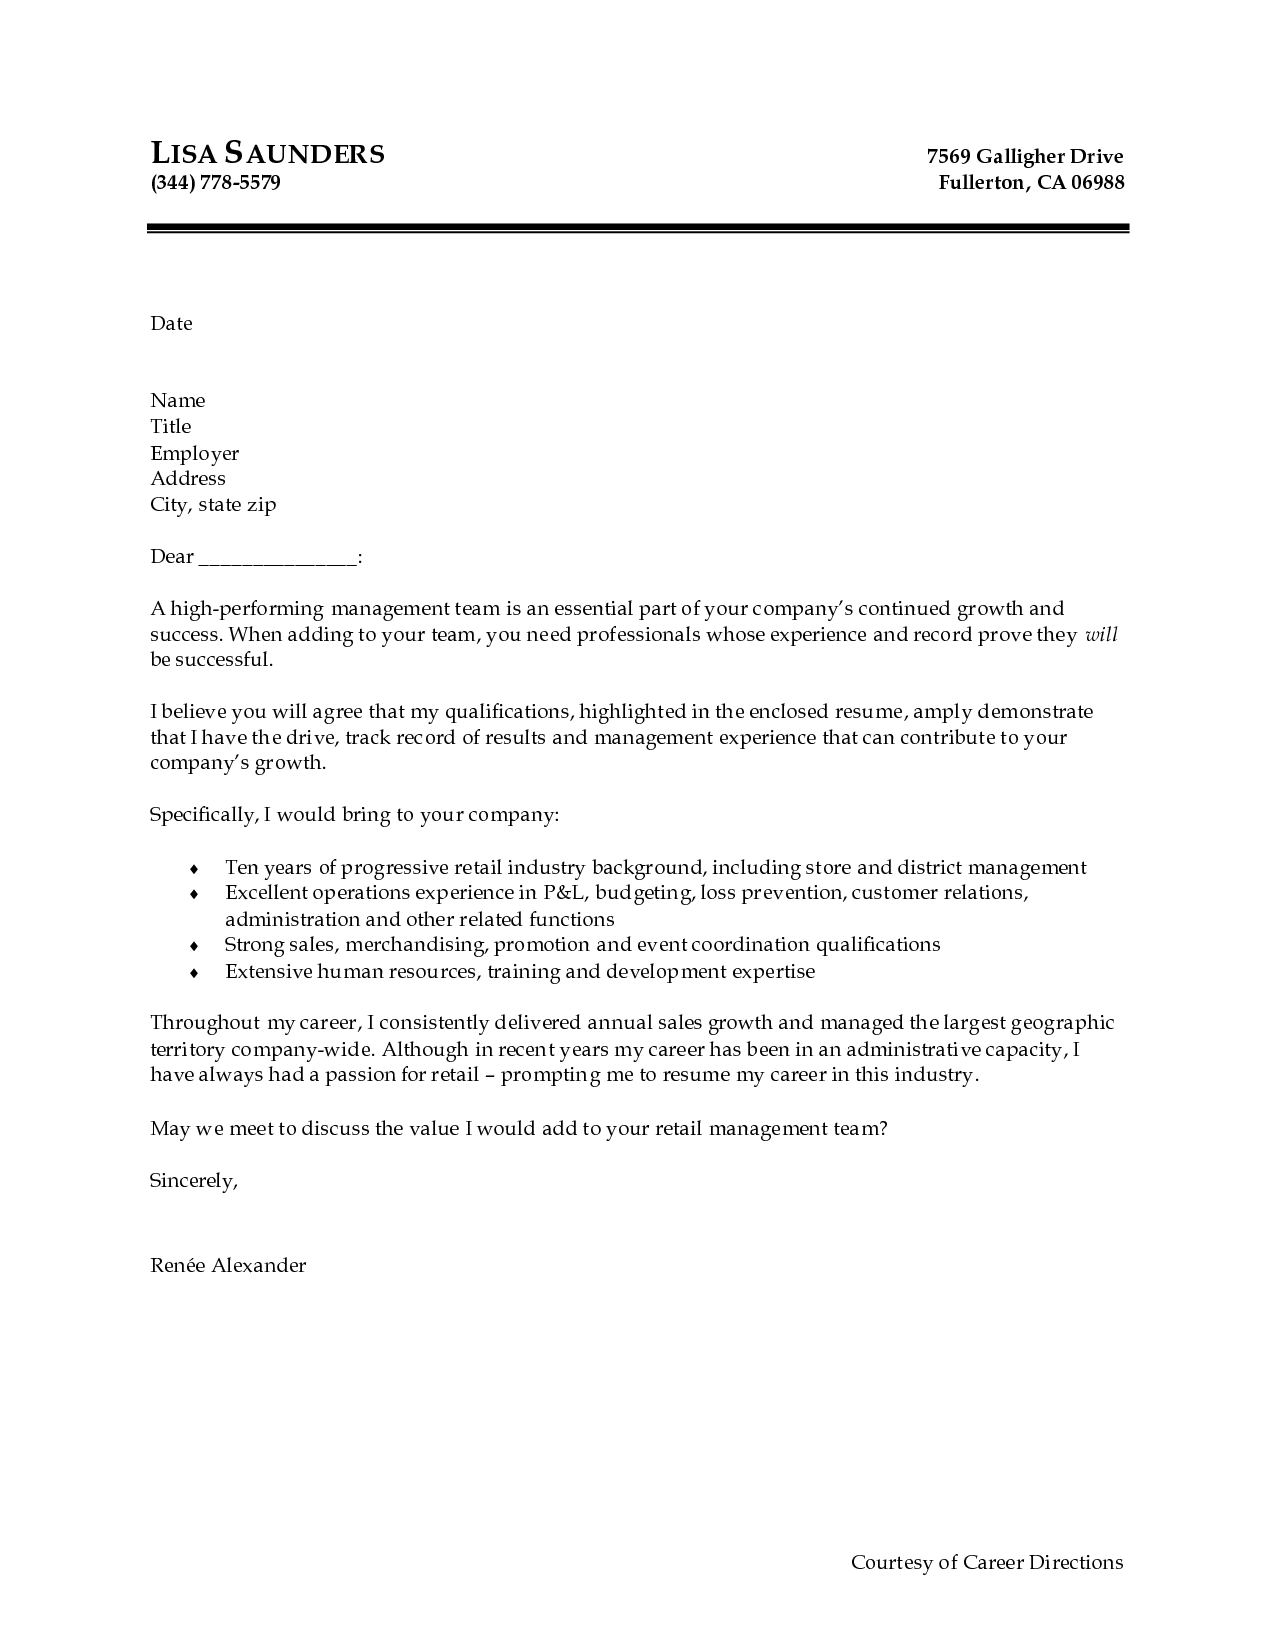 Administrative Assistant Cover Letter Samples Free Resume With Cover Letter Templates  Pinterest  Cover Letter .